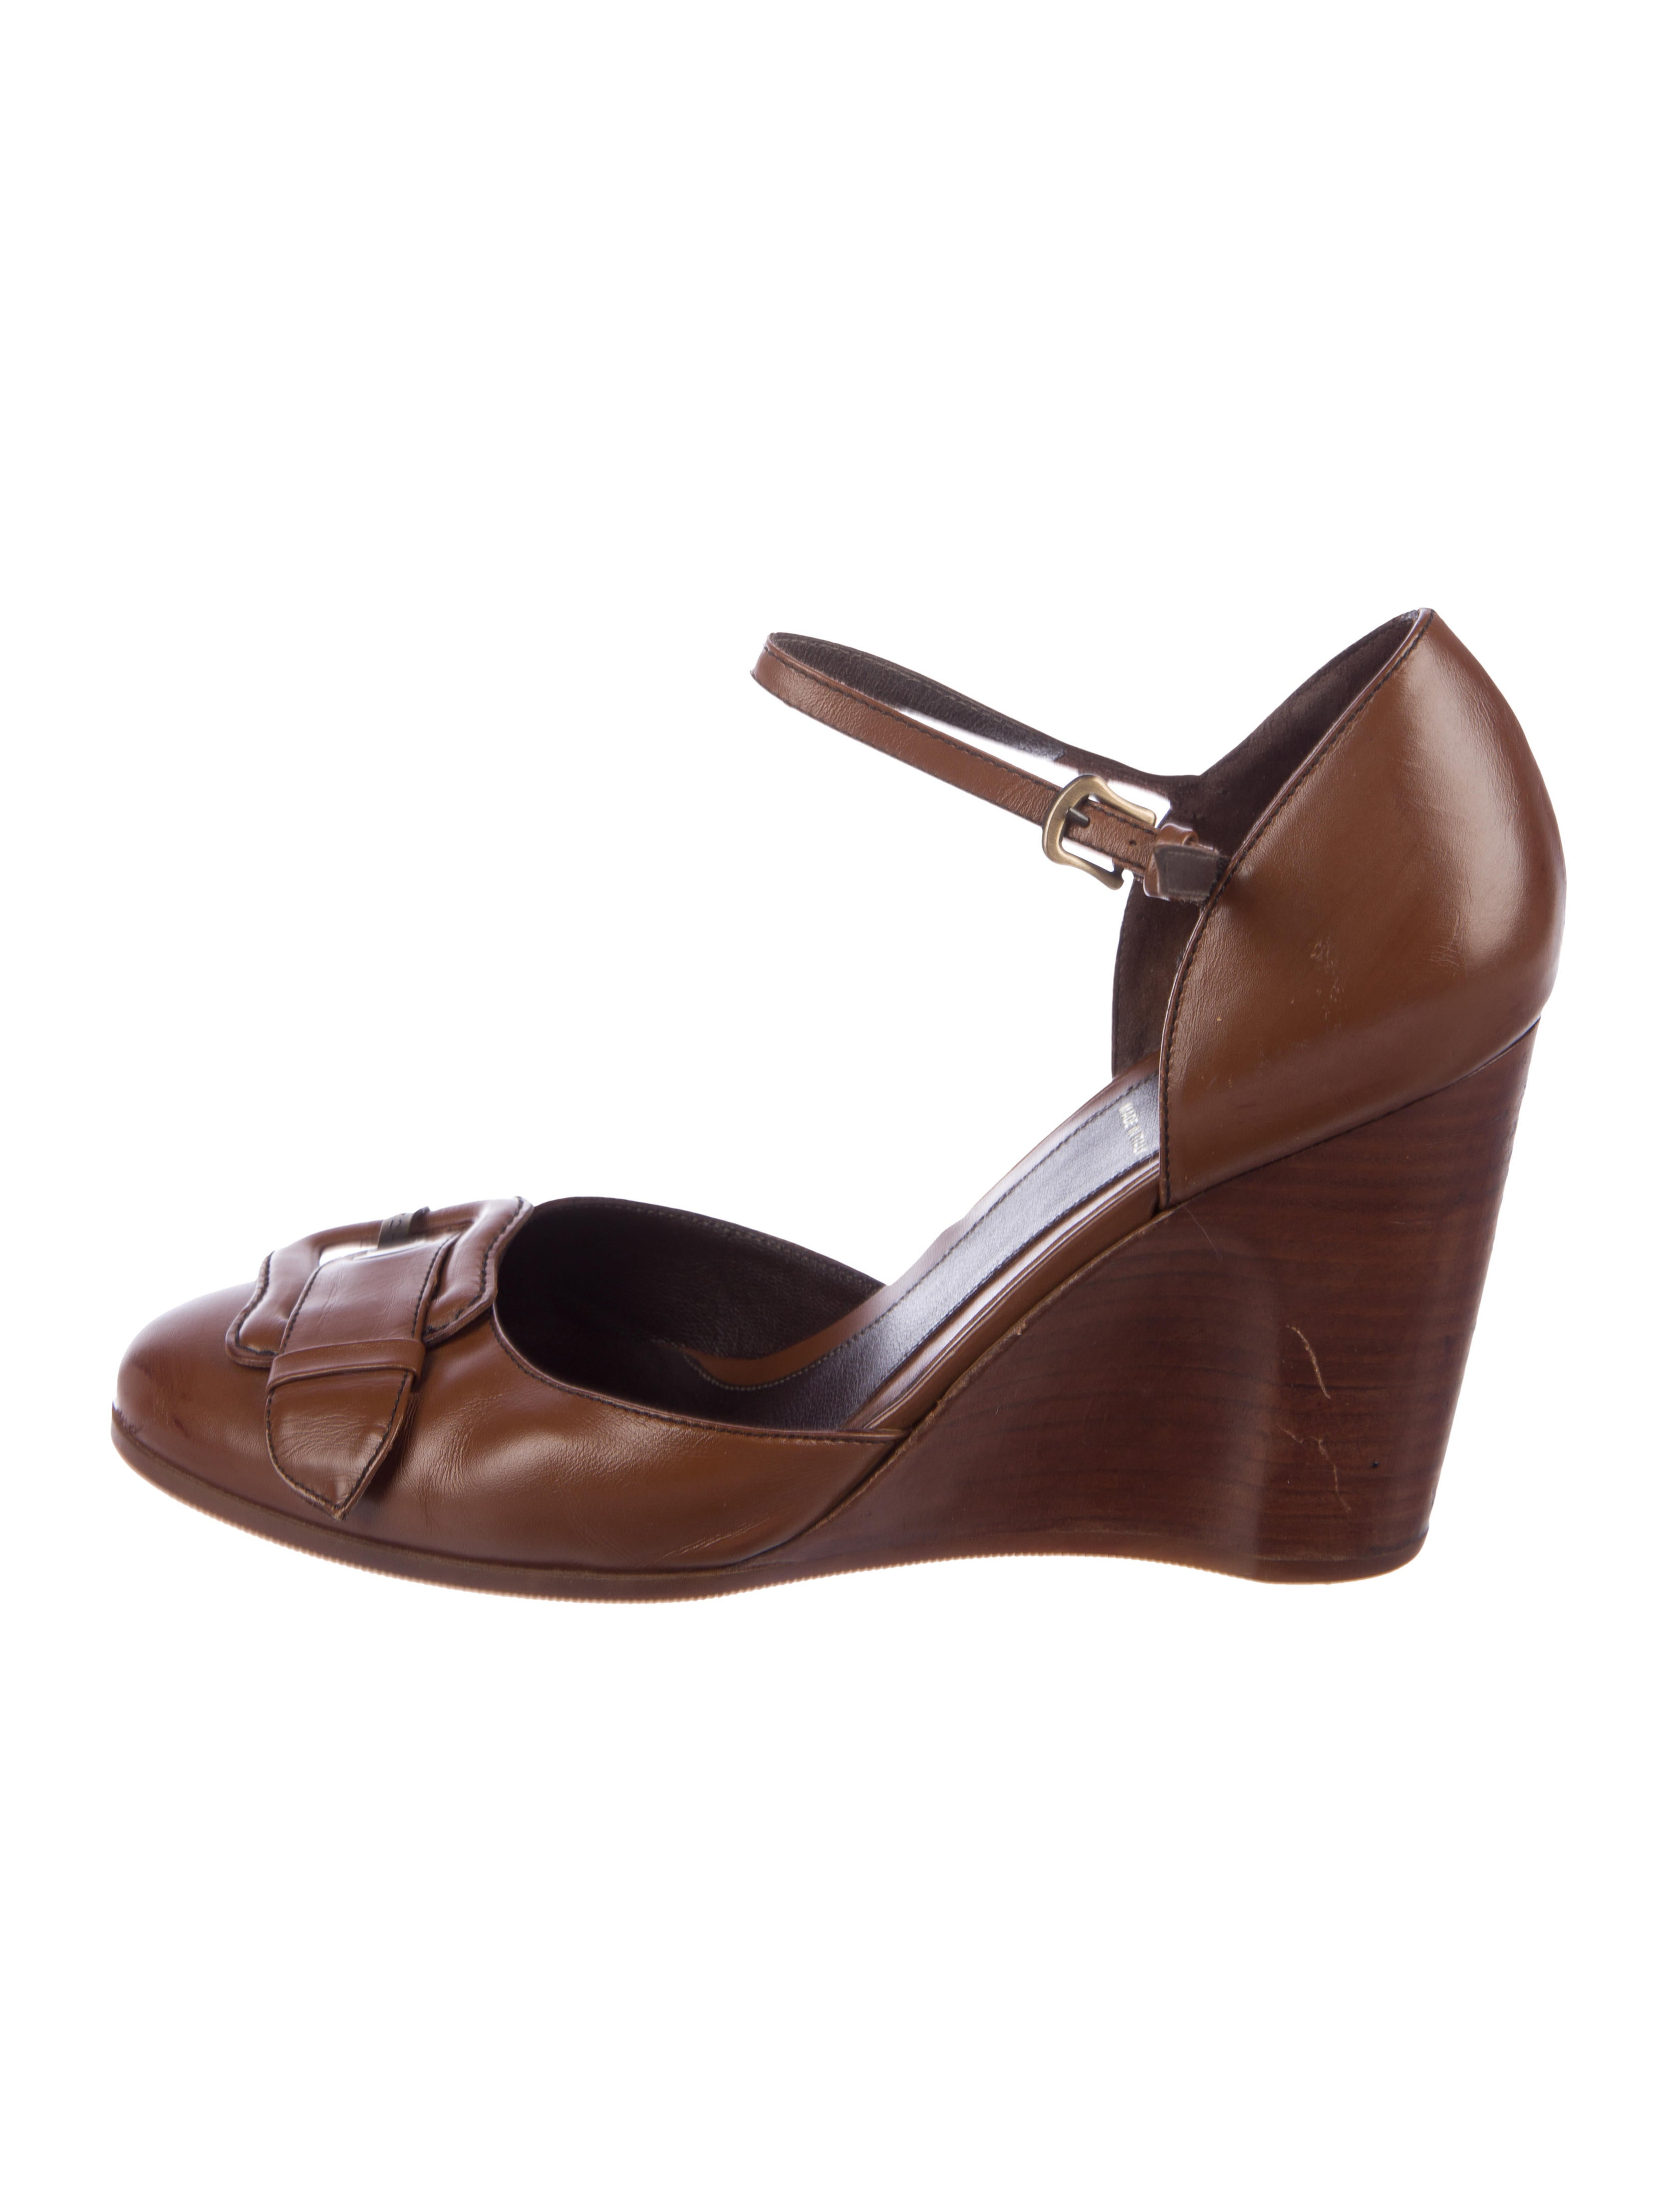 Fendi Leather D'Orsay Wedges cheap 2014 new cheap shop for 100% authentic cheap online FrI2f6g